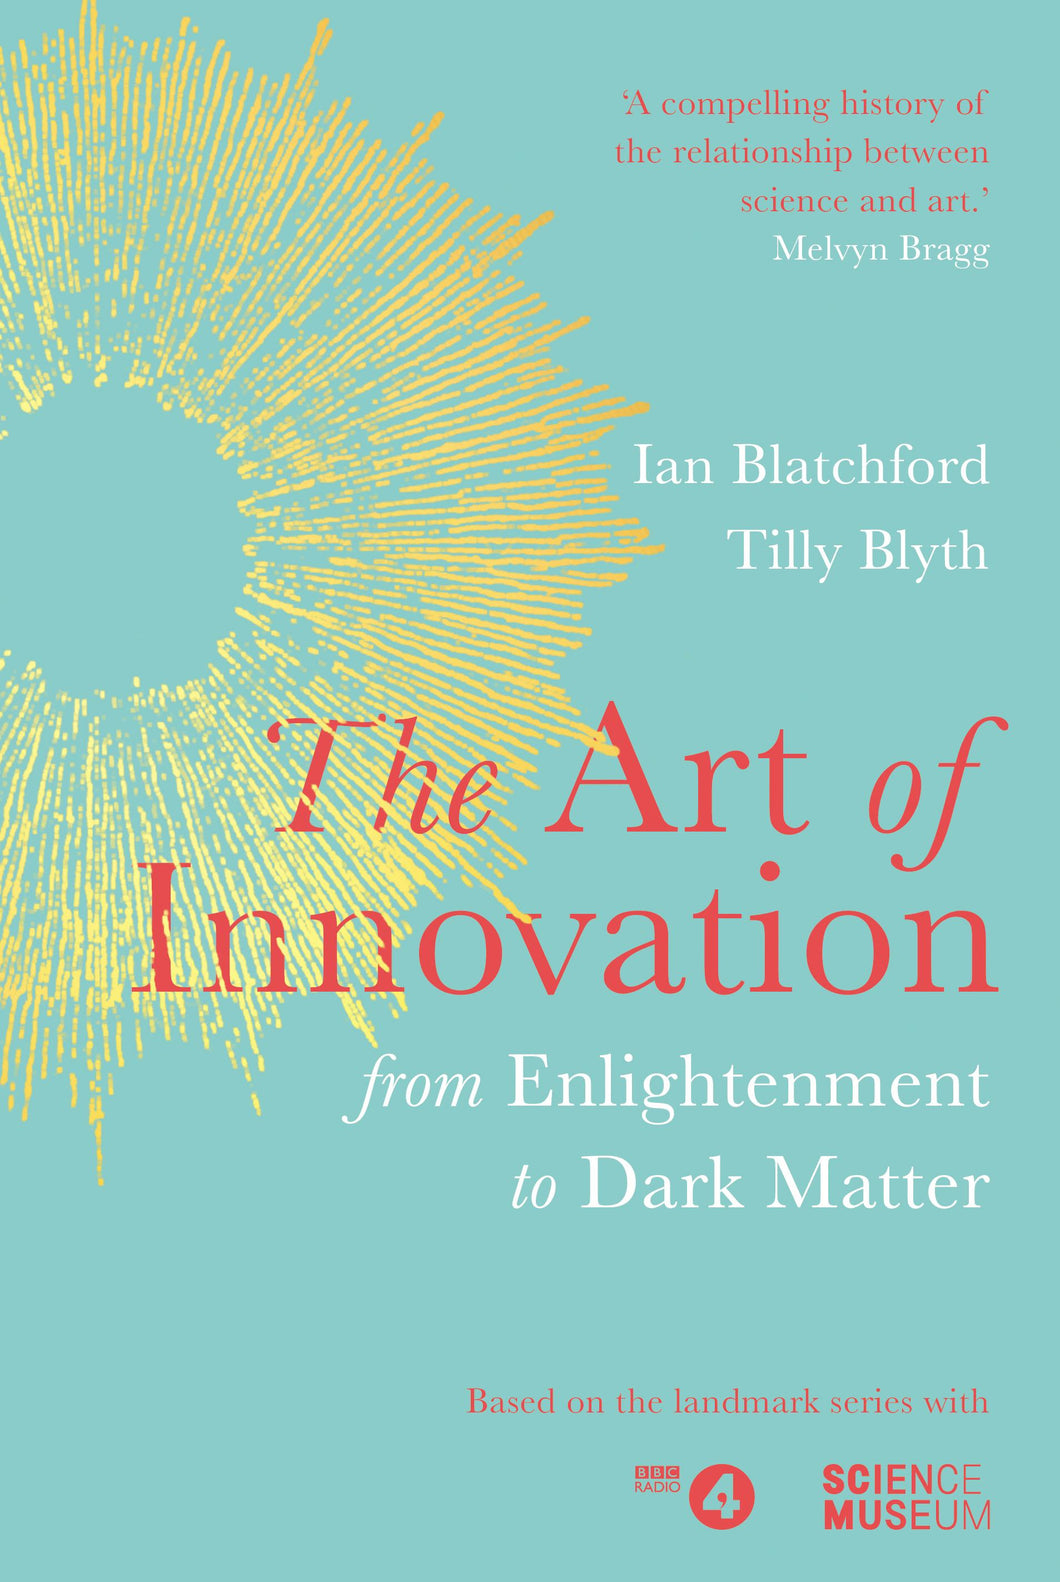 Art of Innovation: From Enlightenment to Dark Matter